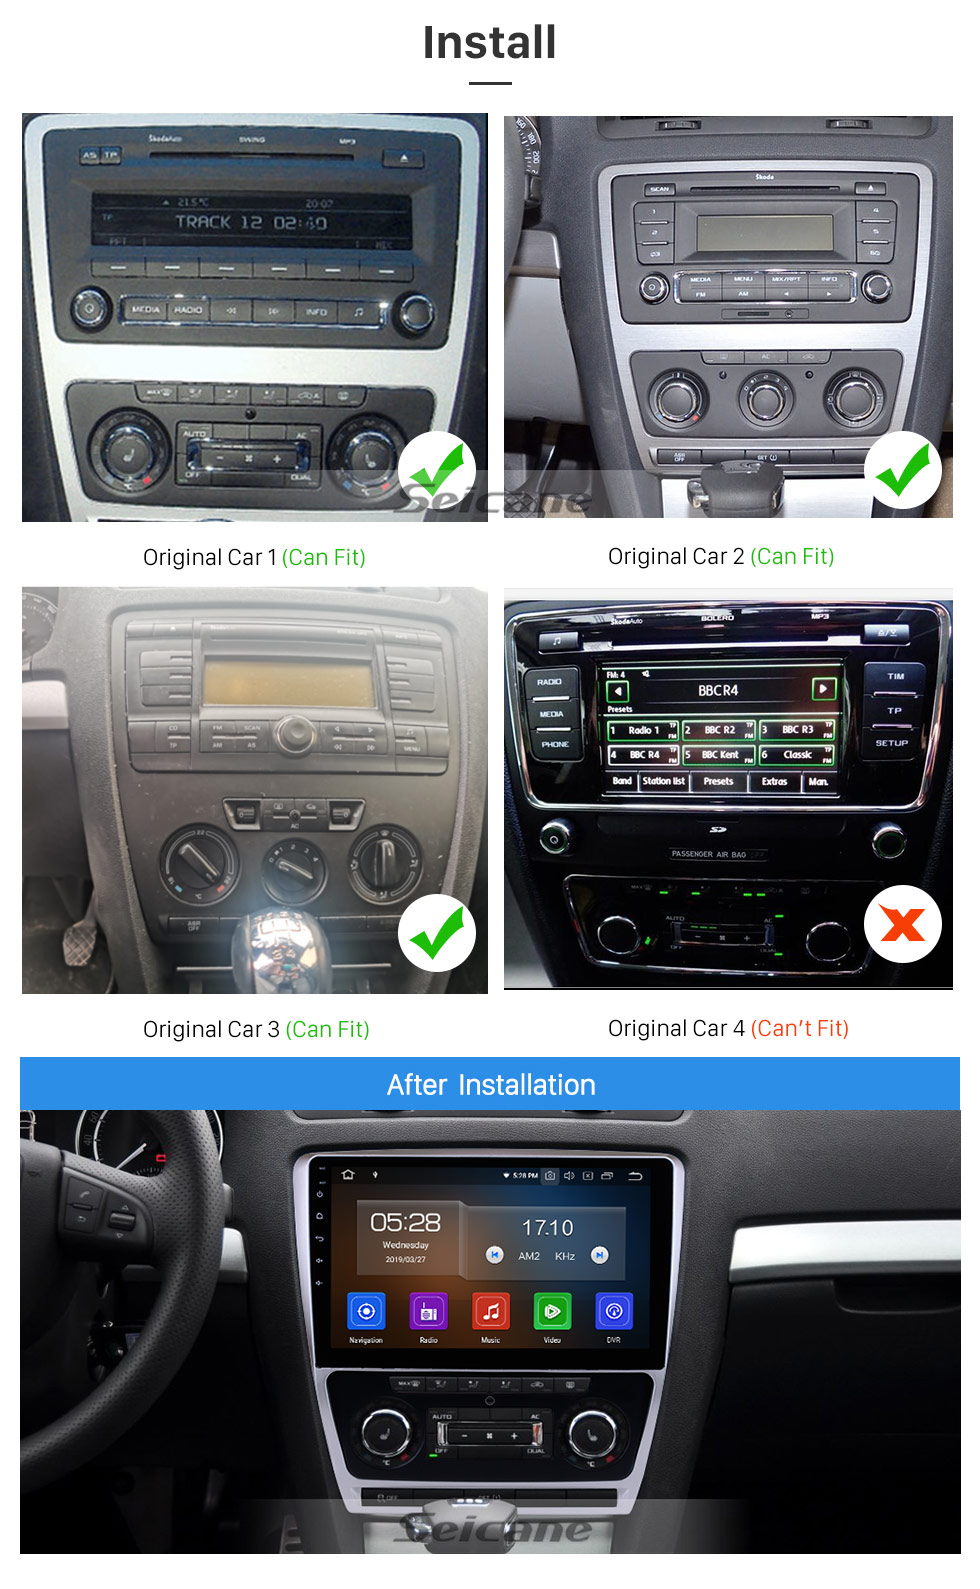 Seicane 10.1 inch For 2007-2012 2013 2014 Skoda Octavia Radio Android 10.0 GPS Navigation System Bluetooth HD Touchscreen Carplay support OBD2